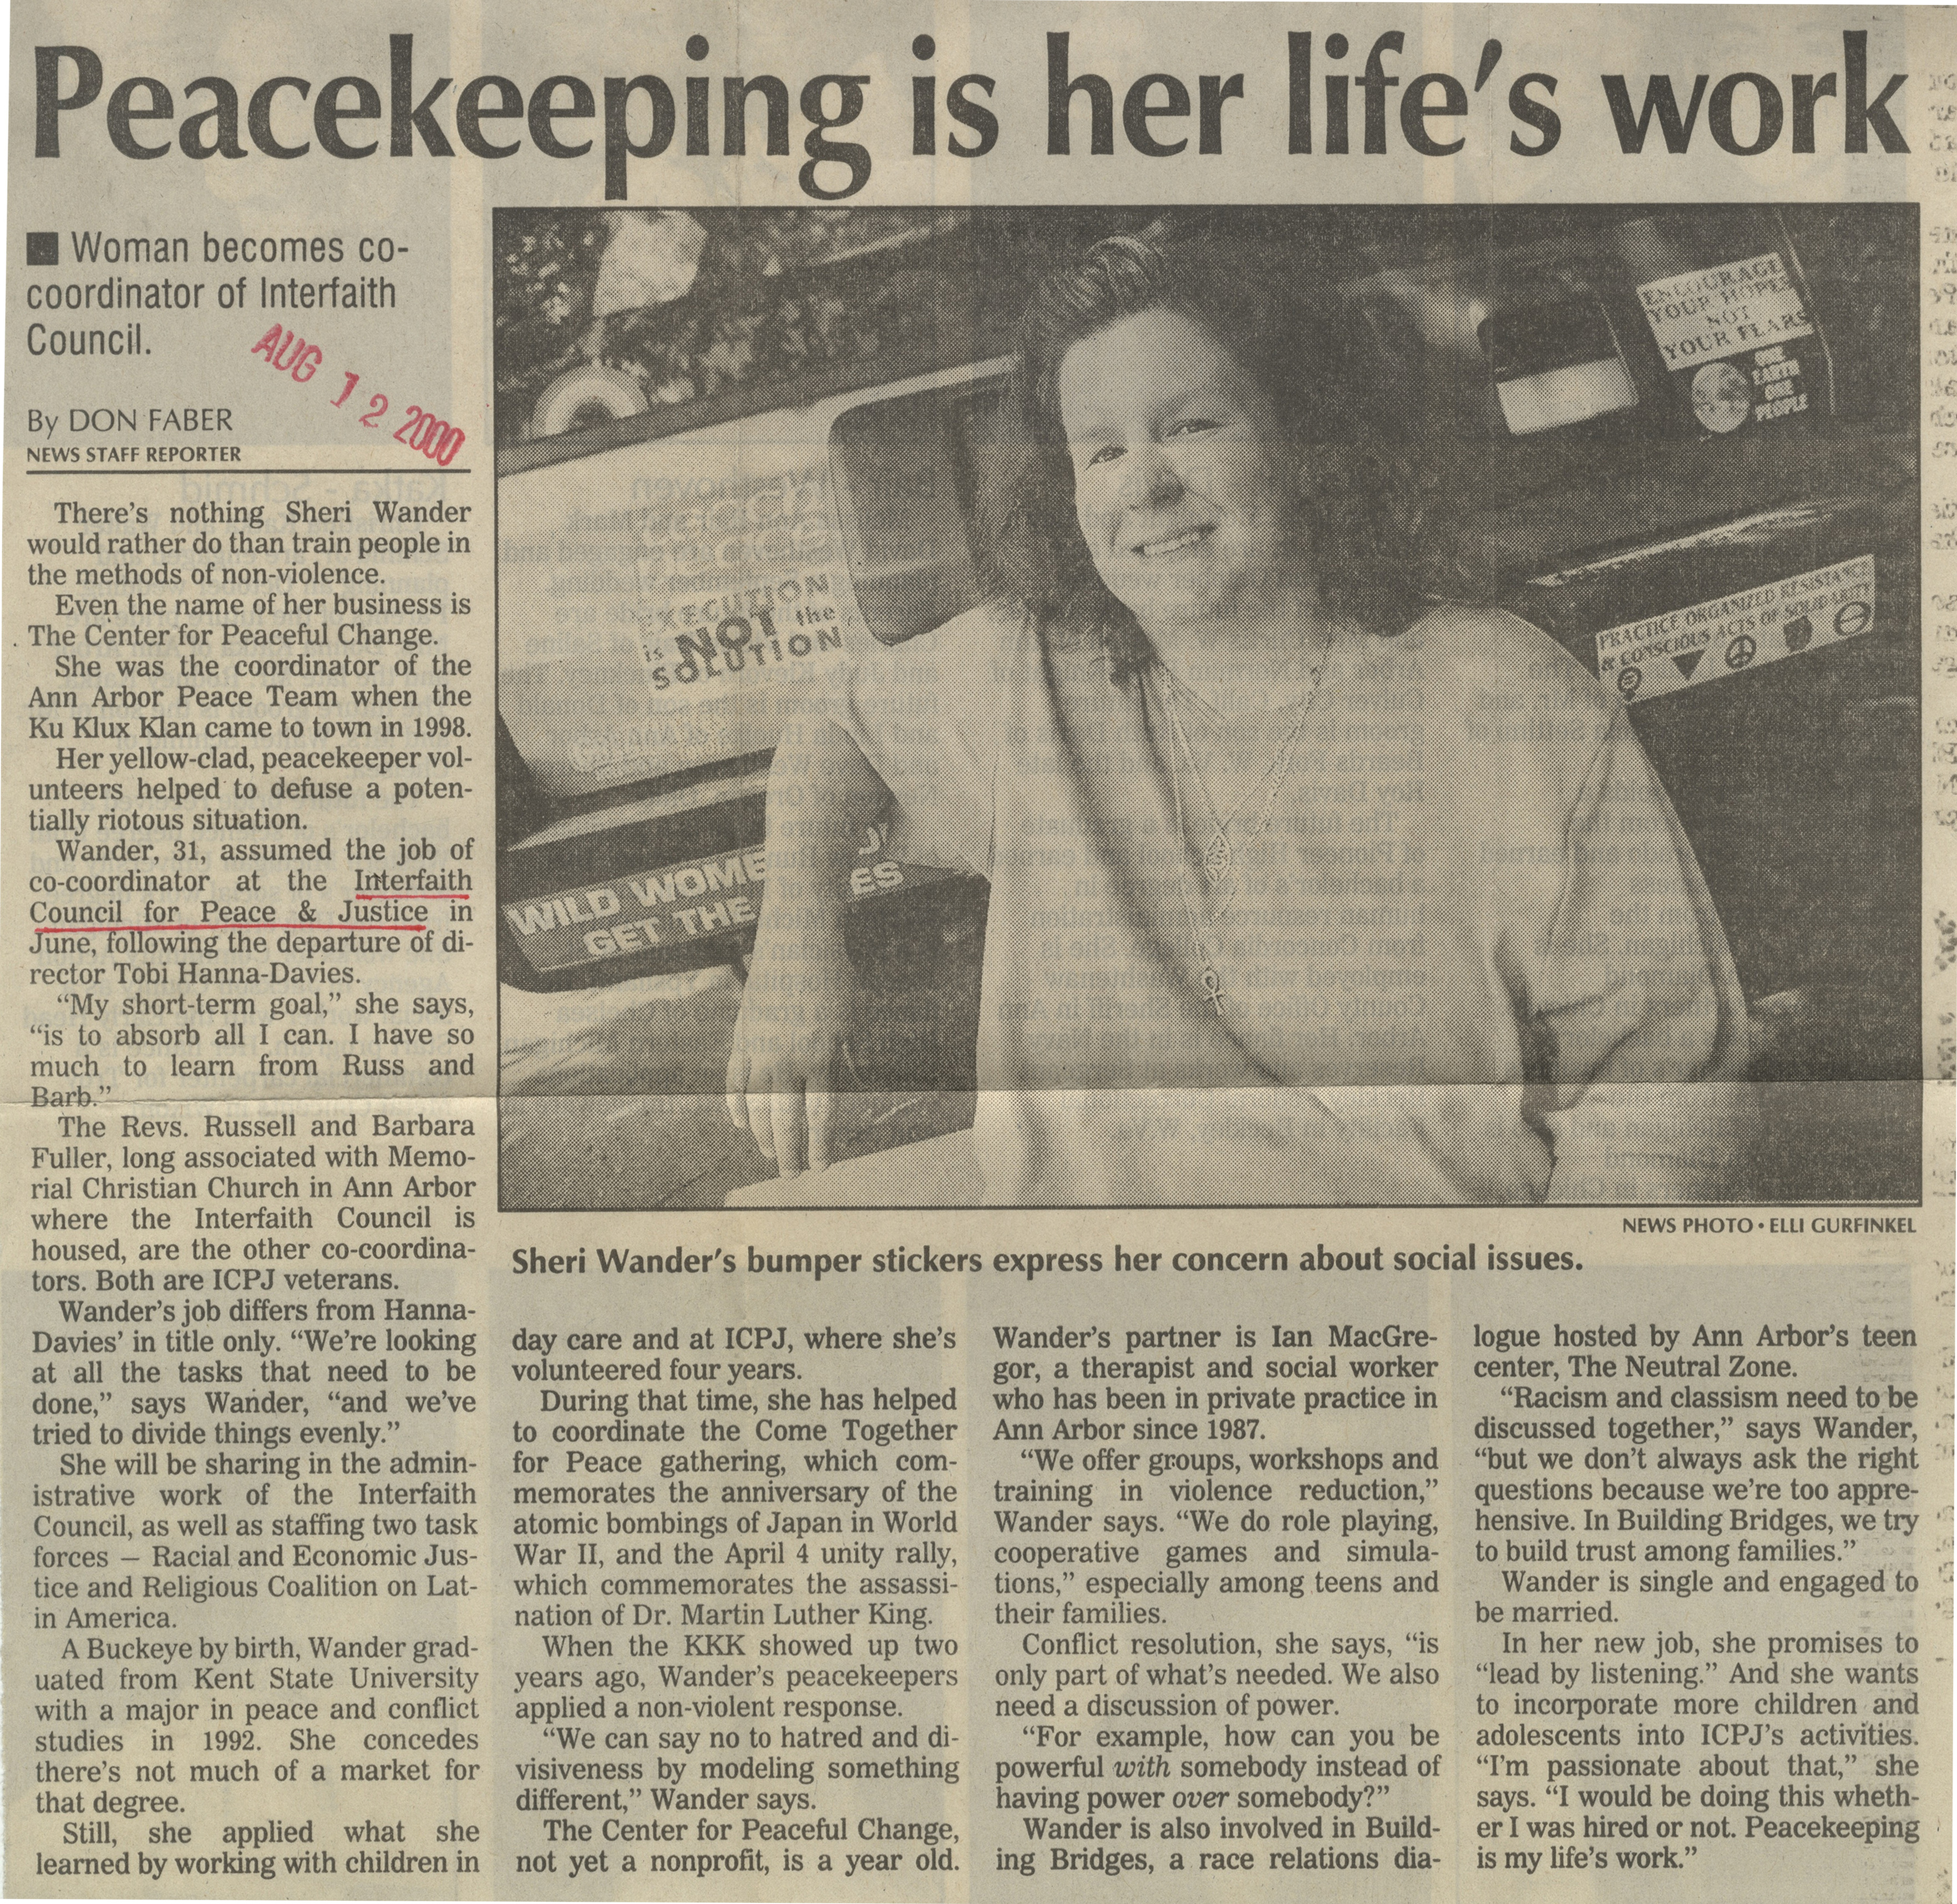 Peacekeeping Is Her Life's Work image